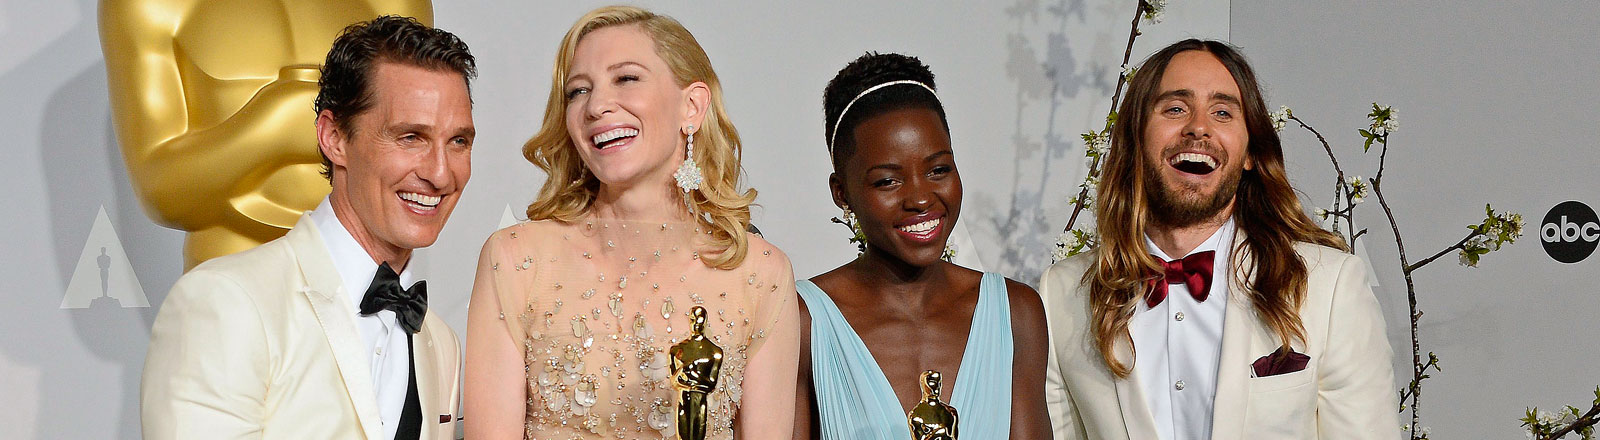 US actor Matthew McConaughey holds the Oscar for Best Performance by an Actor in a Leading Role for 'Dallas Buyers Club', Australian actress Cate Blanchett holds the Oscar for Best Performance by an Actress in a Leading Role for 'Blue Jasmine', Kenyan actress Lupita Nyong'o holds the Oscar for Best Performance by an Actress in a Supporting Role for '12 Years a Slave', and US actor Jared Leto holds the Oscar Best Performance by an Actor in a Supporting Role for 'Dallas Buyers Club' in the press room during the 86th annual Academy Awards ceremony at the Dolby Theatre in Hollywood, California, USA, 02 March 2014